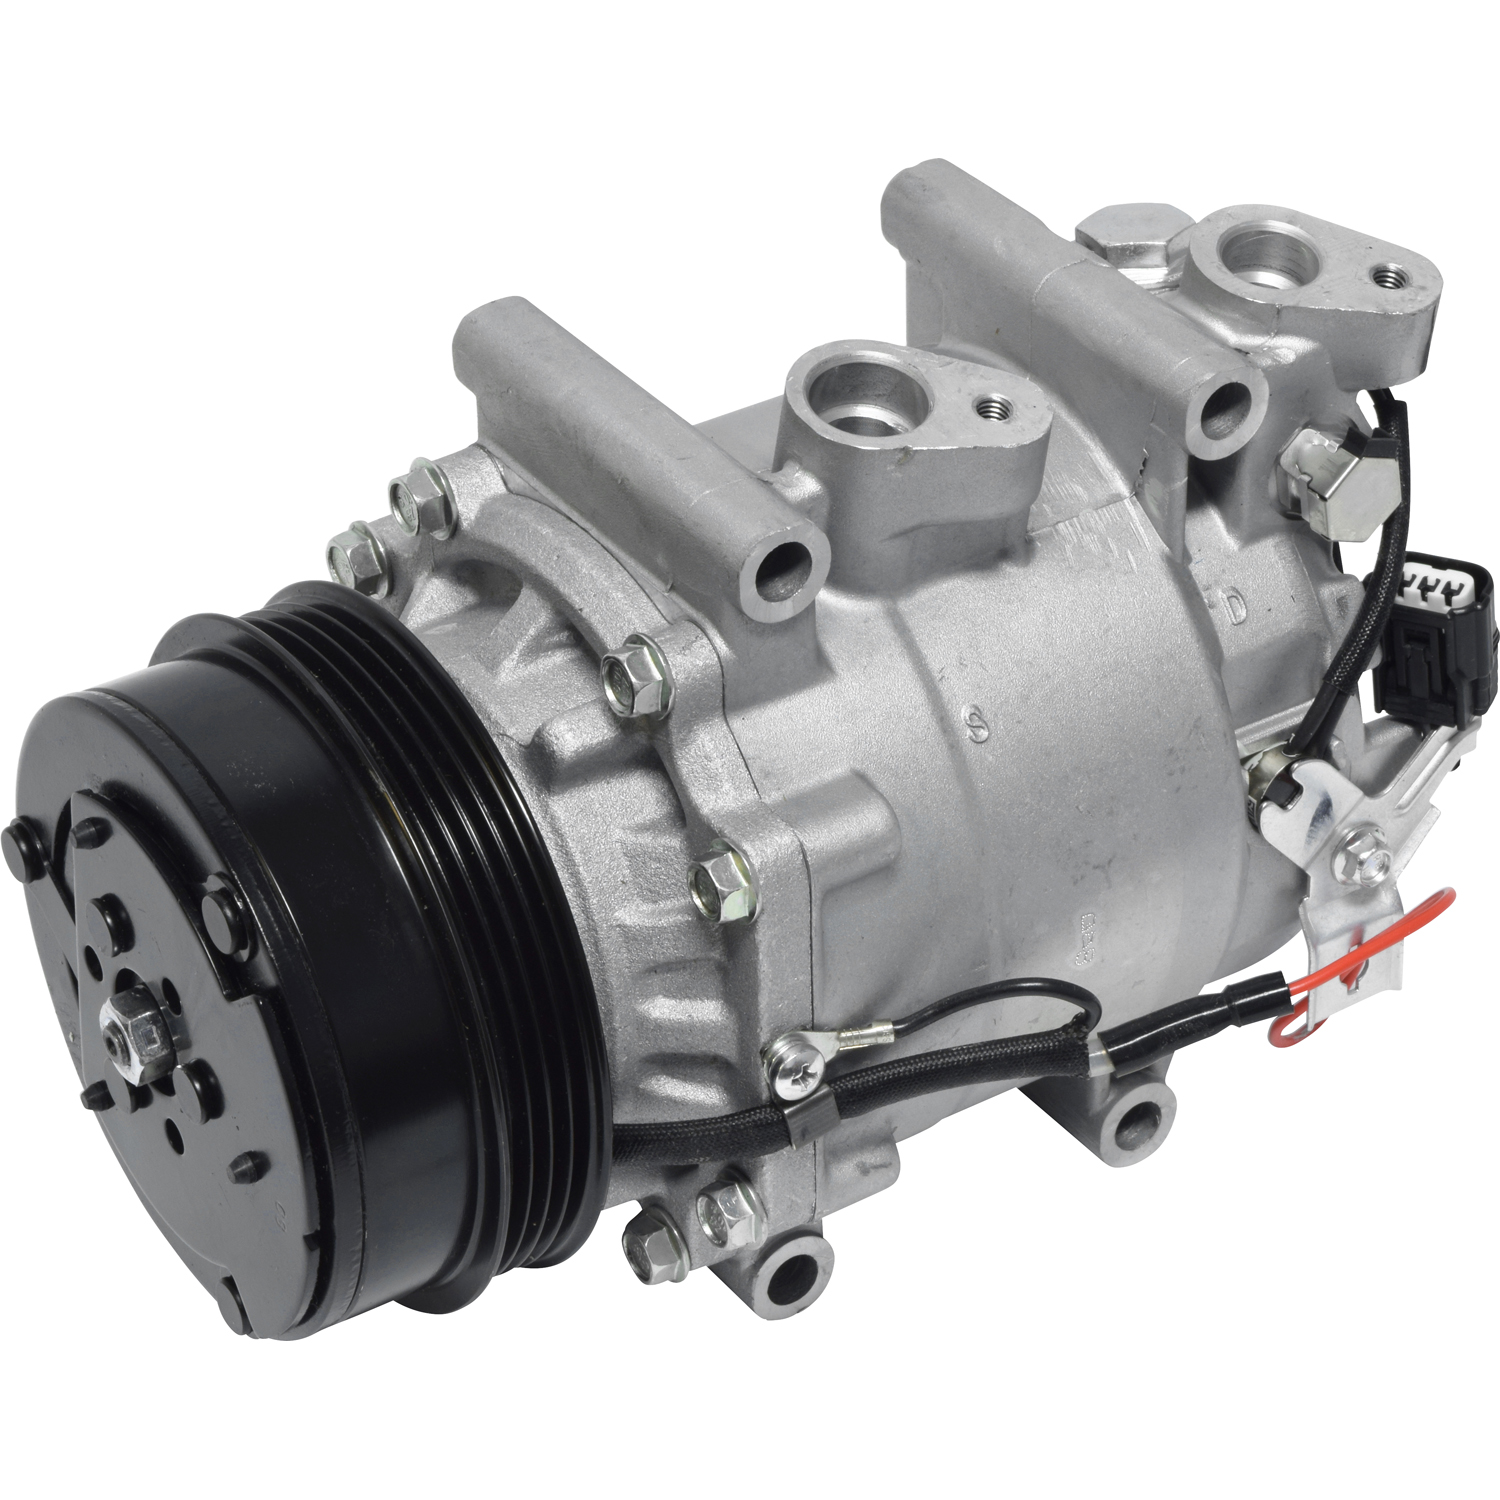 CO 20769C TRSE07 Compressor Assembly